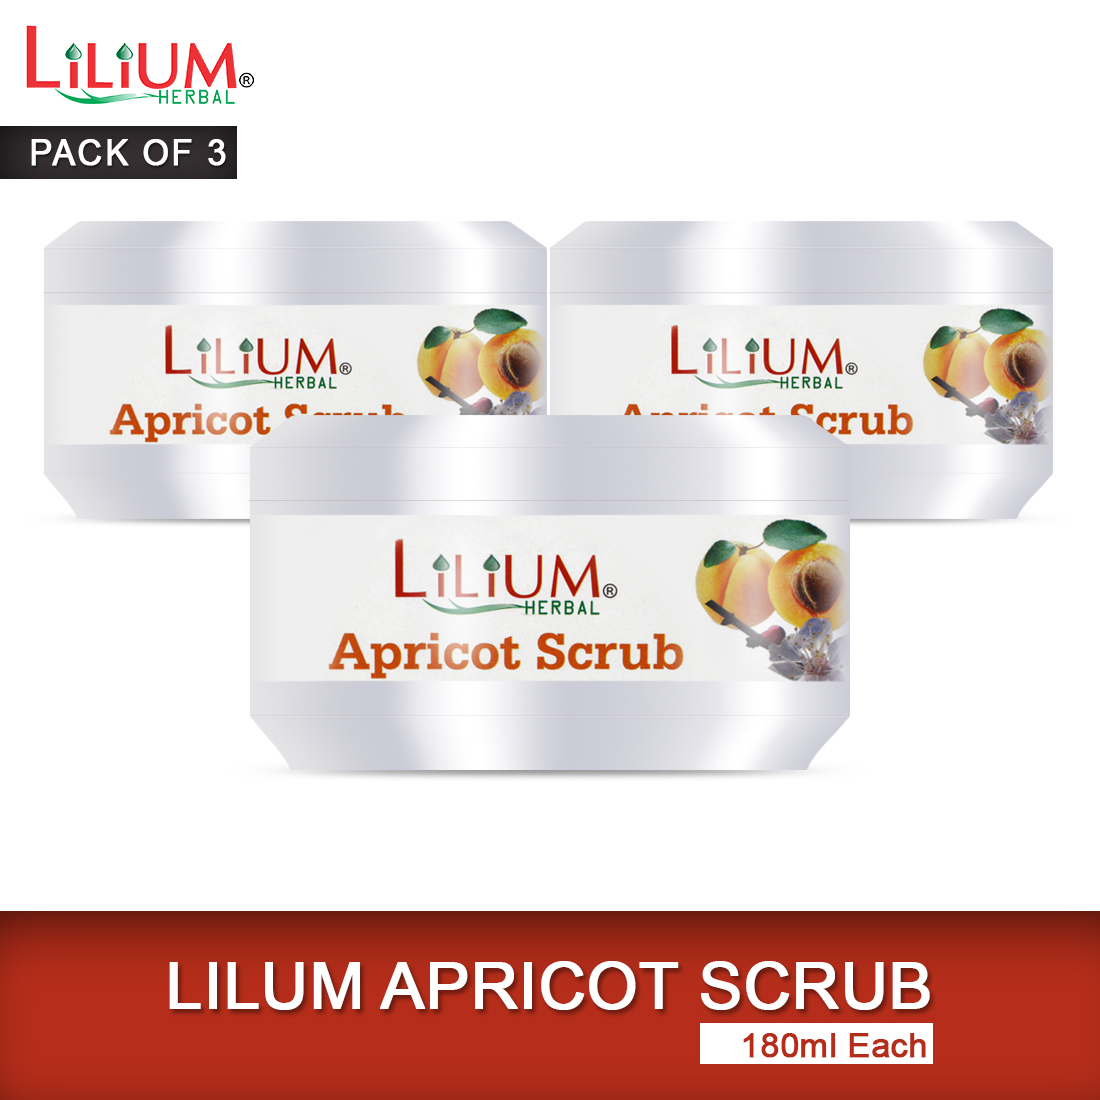 Lilium Apricot Scrub with Apricot Kernel Oil and Almond Oil 180ml Pack of 3